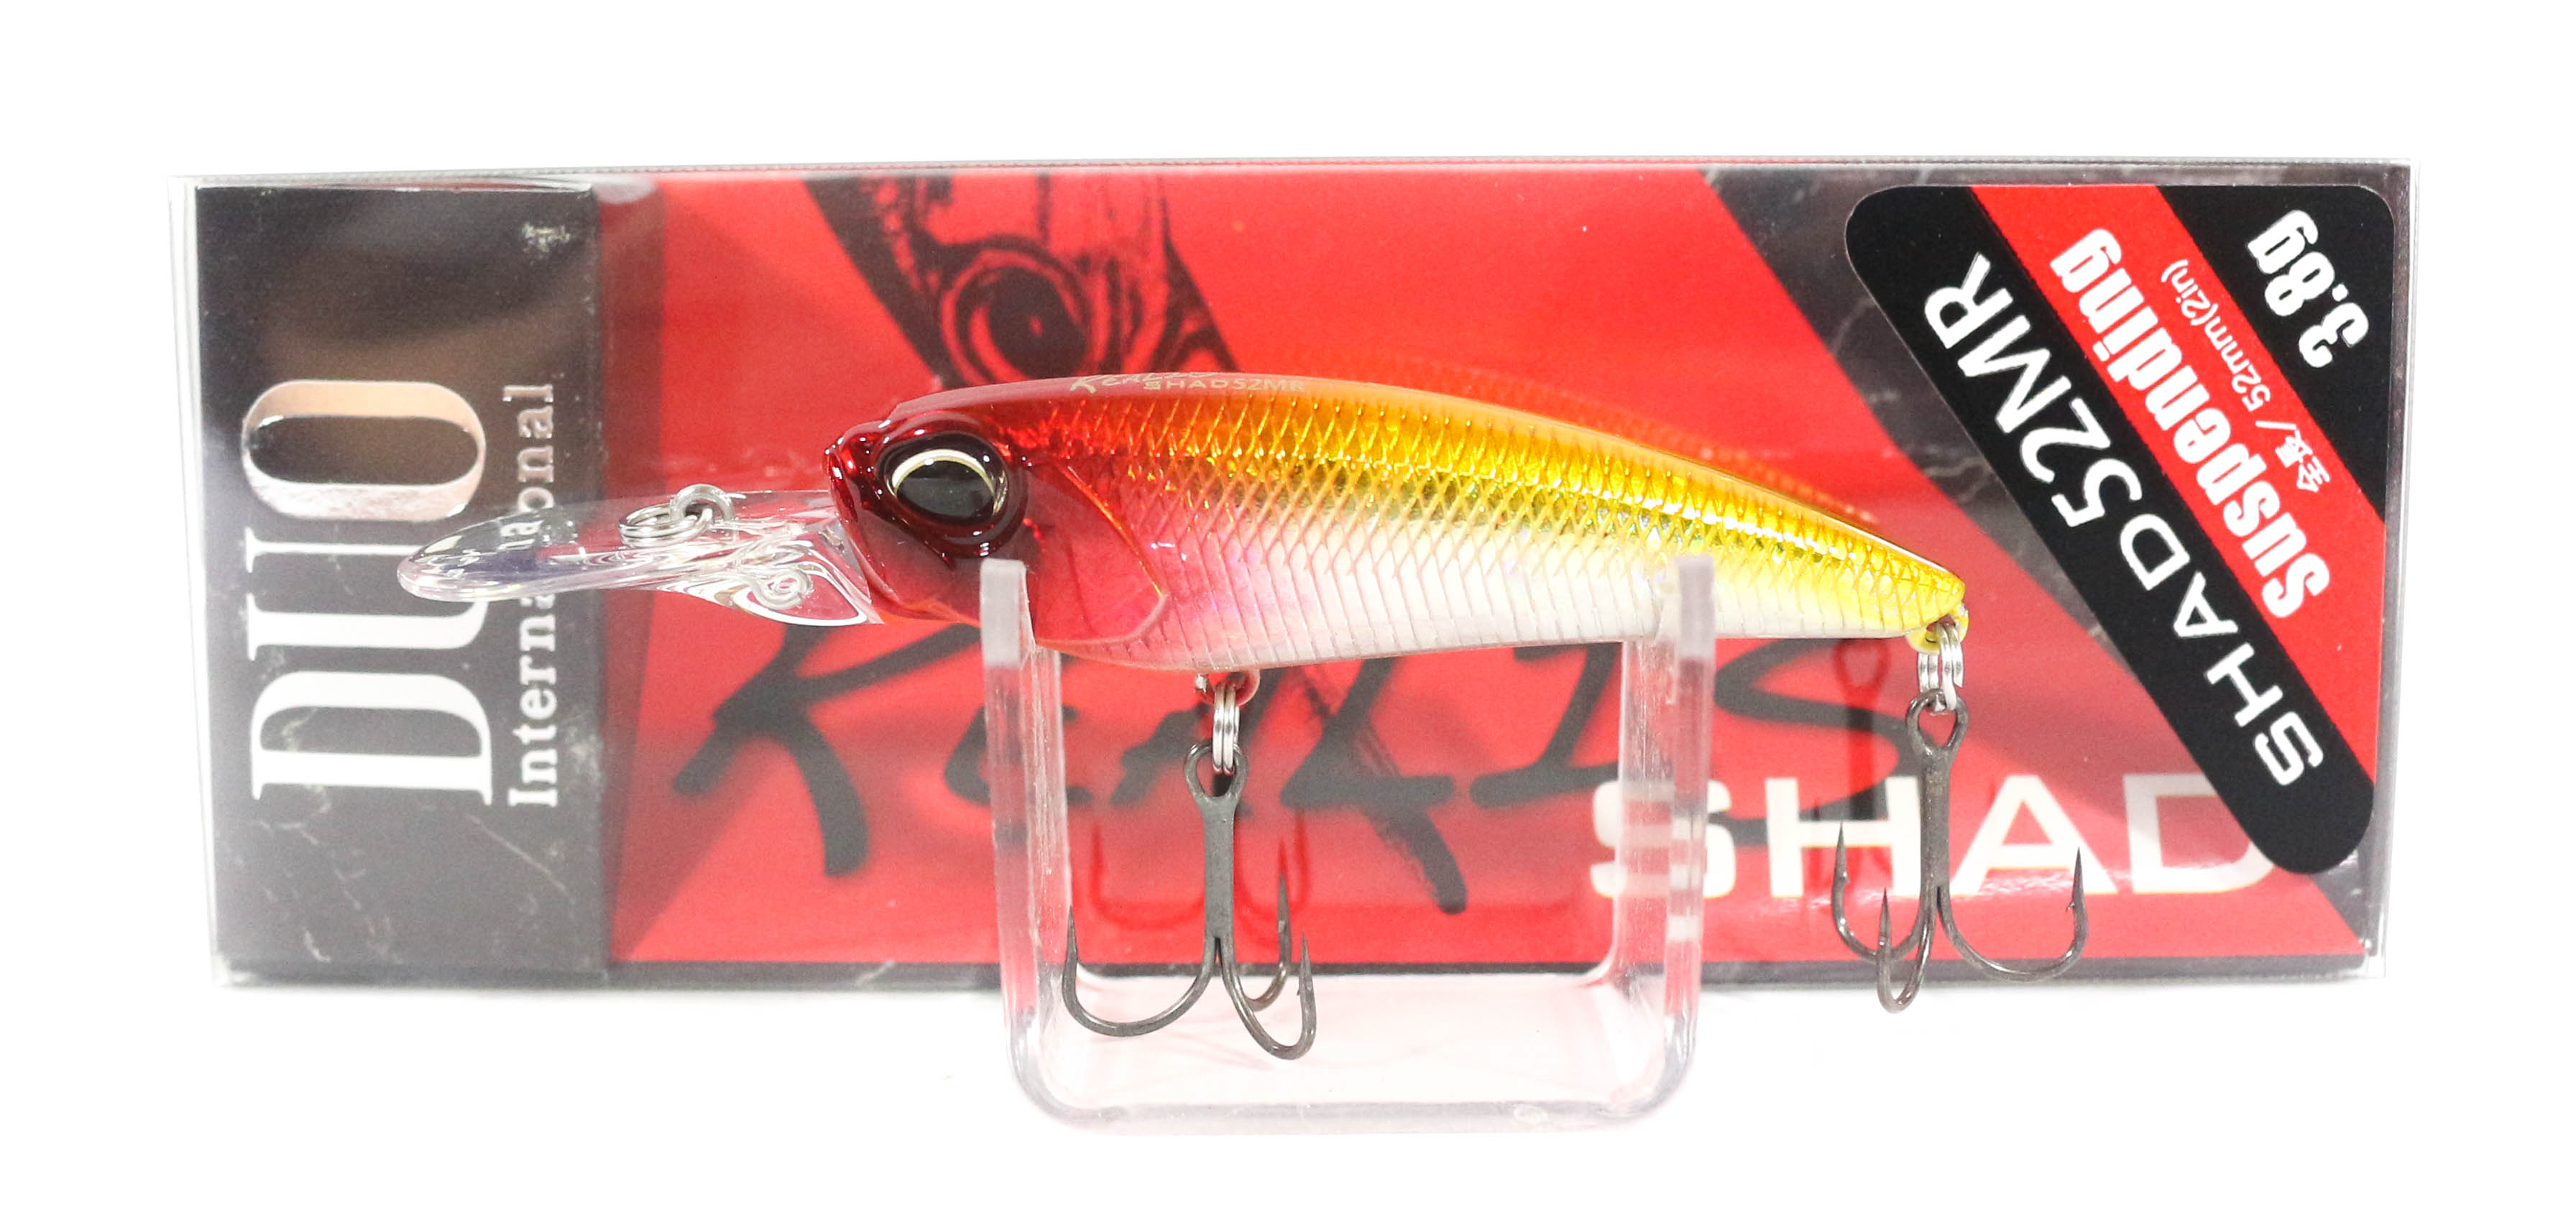 Duo Realis Shad 52 MR Suspend Lure ADA3033 (4555)